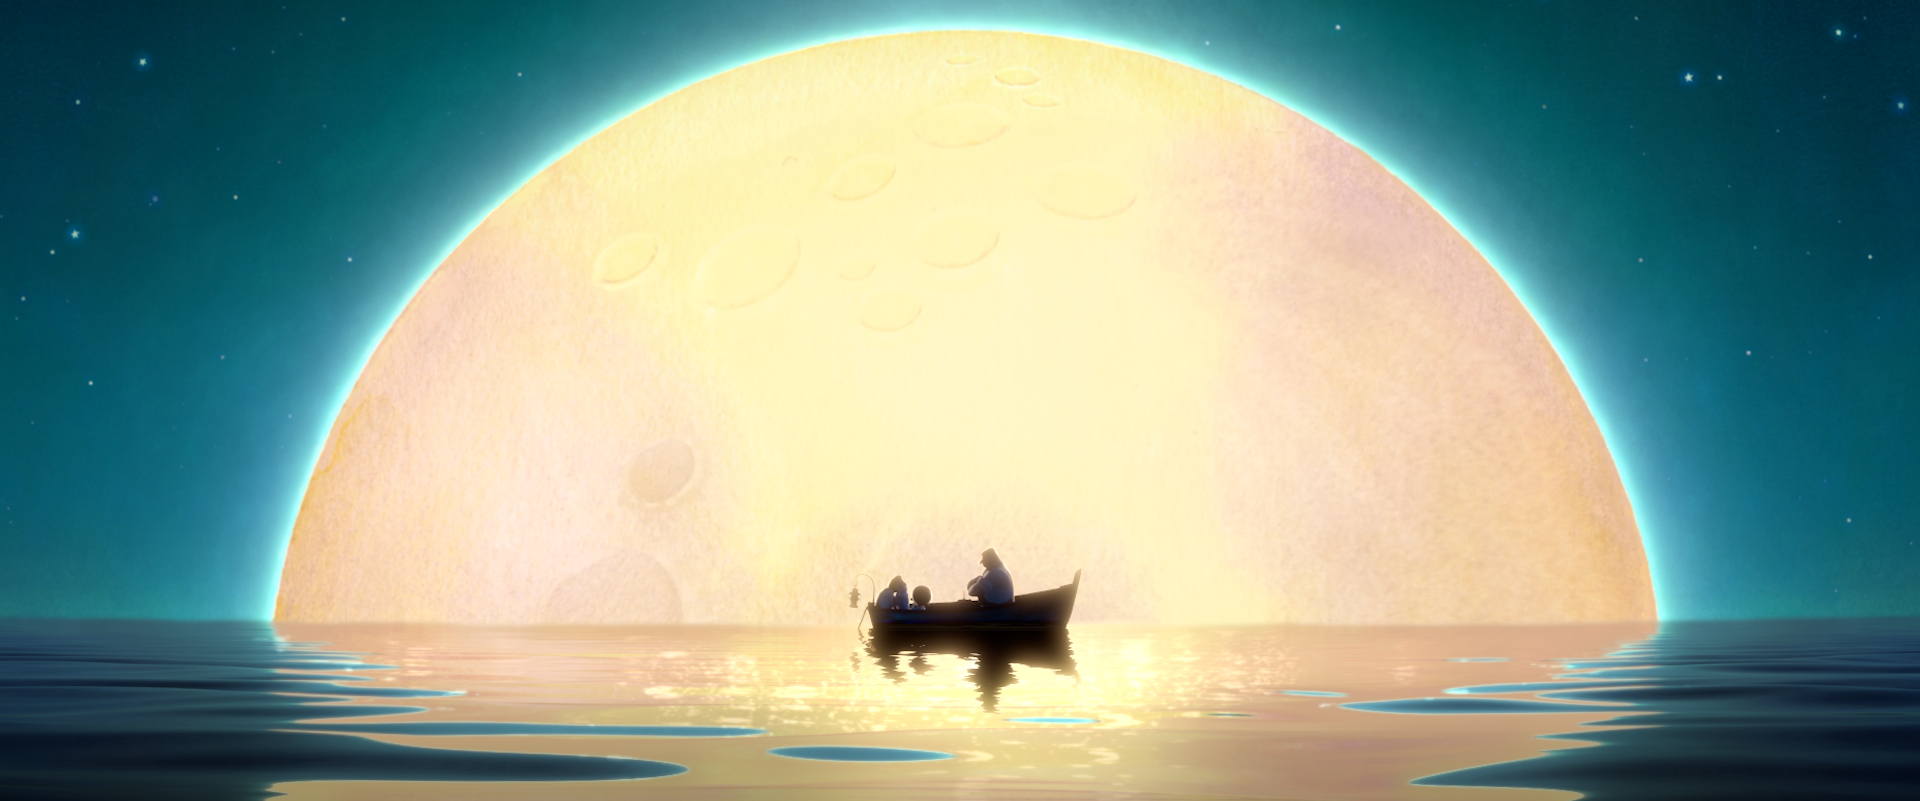 Un fotogramma tratto dal corto animato 'La Luna', di Enrico Casarosa, realizzato per la Pixar nel 2011. cult stories cultstories cinema cult story cultstory art culture music ipse dixit aneddoti citazioni frasi famose aforismi immagini foto personaggi cultura musica storie facts fatti celebrità vip cult spettacoli live performance concerto photo photography celebrity giornalismo scrittura libri genio pop icon pixartprinting pixar film pixar lava pixar court metrage pixar movies pixar disney pixar streaming pixar renderman pixar logiciel pixar 2015 pixar vice versa pixar wiki pixar animation pixar allocine pixar a113 pixar alien pixar arlo pixar a venir pixar animation movies pixar animaux pixar a voir pixar auditorium lyon a pixar story a pixar animation studios film a pixar theory a pixar animation studios film logo a pixar story watch online a pixar short film a pixar production a pixar film a pixar story streaming a pixar adventure pixar à venir pixar à voir pixar à paris film pixar à venir coloriage pixar à imprimer pixar vacances à hawaï pixar boule à neige musée pixar à paris rebelle pixar à partir de quel age travailler à pixar entrer à pixar stage à pixar pixar birds pixar bande annonce pixar bonhomme de neige pixar boutique pixar box office pixar boats pixar blue umbrella pixar bande annonce vice versa pixar barcelone pixar best movies wally b pixar lil b pixar andre wally b pixar pixarro b pixar b bnl pixar lil b pixar lyrics lil b pixar mp3 mr b pixar wally b pixar wiki pixar cannes pixar cannes 2015 pixar cars pixar cloud pixar cerveau pixar careers pixar chien pixar court metrage volcan pixar court metrage lava pixar c'est disney c disney pixar pixar c c windows pixart pac207 monitor exe c windows pixart tif_pixarlog.c pixarro c cortos pixar pixar çizgi filmleri pixar çizgi filmleri izle pixar çorlu pixar çizgi film izle pixar çalışma ortamı pixar çalışanları disney pixar çizgi filmleri izle pixar da çalışmak pixar da çalışan türk pixar çizgi film pixar dernier film pixar dinosaur pixar dreamworks pixar dernier pixar day and night pixar dessin animé wiki pixar dragon pixar documentaire pixar dernier dessin animé r&d pixar pixar subd pixar d canto d pixarro femia d pixarro teoria d pixar cortos de pixar baixar canto de pixarro ouvir canto de pixarro pelis de pixar pixar et disney pixar emotion pixar en concert pixar en route pixar extraterrestre pixar et walt disney pixar echec pixar en concert philharmonie pixar easter egg pixar en streaming é pixar ou pichar e pixar theory pixart e gallery pixar wall e ebook pixar pixar é errado pixar é crime ambiental pixar e cards wall-e pixar wiki burn e pixar short full pixar émotions pixar échec pixar été 2014 pixar é crime pixar é humano pixar é da disney pixar é arte pixar é com x ou ch pixar é humano letra pixar é crime ou contravenção pixar è disney pixar che cos'è pixartprinting è affidabile pixar film 2015 pixar film animation pixar film streaming pixar film 2014 pixar facebook pixar futur film pixar festival de cannes pixar film inside out pixar film wiki pixar f pixarro f pixar générique pixar gratuit pixar george lucas pixar game pixar geri's game pixar good dinosaur trailer pixar gif pixar god pixar good dinosaur pixar games online g pixar movies g pixar films pixar g major pixar g rating g force pixar pixar histoire pixar home pixar hero pixar homme orchestre pixar hd pixar history pixar headquarters pixar hq pixar hommage pixar hamburg pixart pan3305dk-h pixar cars case h pixart paw3305dk-h pixart pan3305dk-h sensor pixar inside out pixar intro pixar in concert pixar imdb pixar indice pixar internship pixar inside out trailer pixar impression pixar instagram pixar i lava you i pixar movie pixar i will survive pixar i film pixar i disney pixar i kill pixar i costume pixar i corti pixar i death pixar i revenge pixar i believe in miracles pixar jobs pixar juin 2015 pixar jour nuit pixar juin pixar joie pixar joueur d'échec pixar jeu d'échec pixar jeux pixar jorat pixar juillet 2015 george & a.j. pixar george & a.j. pixar short pixar knick knack pixar konbini pixar kiwi pixar kinect pixar knick knack hd pixar kurzfilme pixar kurzfilme vögel pixar kurzfilme alien pixar kurzfilm wolke pixar kurzfilme lifted john k pixar pixar liste pixar lifted pixar lampe pixar la luna pixar logo pixar lava full pixar lava song pixar lava francais pixar l'homme orchestre pixar l expo pixar l age de glace pixar l'extraterrestre pixar l l'intégrale pixar - coffret l'intégrale pixar - coffret blu-ray l'exposition pixar 25 ans d'animation l entreprise pixar l histoire de pixar pixar mouton pixar magicien pixar meilleur pixar movies 2015 pixar magicien presto pixar musique pixar minion pixar meilleur film pixar mini movies m.youtube.com pixar pixar m-o disney pixar m a a&m pixar references m-o pixar wiki m u pixar texas a&m pixar m pixarグラフィックt pixar nouveau pixar new movie pixar nuage pixar nouveauté pixar newt pixar noel 2015 pixar night and day pixar nemo pixar nouveau dessin animé pixar next movie pixar n picmonkey n pixar edit foto pixar oiseaux pixar one man band pixar offre son logiciel pixar origine pixar offre pixar oscar pixar offre logiciel pixar open source pixar oiseaux sur un fil pixar ovni pixlr o matic disney ou pixar pixlr o matic free download pixar o matic download pixar o muro pixar o dreamworks pixar o muro ou pichar pixar o matic express pixar o quarto pixar o guarda chuva azul pixar összes mese pixar öffnungszeiten bonn öffnungszeiten pixar ausstellung bonn öffnungszeiten pixar ausstellung hamburg öffnungszeiten pixar ausstellung pixar hamburg öffnungszeiten lista över pixar filmer bundeskunsthalle bonn pixar öffnungszeiten pixar museum bonn öffnungszeiten összes pixar film pixar planet pixar presto pixar personnages pixar prochain film pixar pizza planet pixar partly cloudy pixar paris pixar production pixar photo up pixar up pixar streaming up pixar streaming vostfr up pixar piano up pixar streaming vf up pixar soundtrack up pixar full movie up pixar download up pixar 2009 up pixar quotes pixar quebec pixar quiz pixar quotes pixar quai d'austerlitz pixar quitte disney pixar quotes inspirational pixar quotes tumblr pixar qualifications pixar que es pixar quality q es pixar pixar q matic pixar recrutement pixar racheté par disney pixar renderman gratuit pixar rebelle pixar rosetta pixar reference film suivant pixar research pixar récent pixar renderman blender pixar r rated pixar r rated book pixar r rated children's book r rated pixar easter eggs buzzfeed pixar r rated pixart.r pixar short pixar studio pixar steve jobs pixar store pixar software pixar sortie pixar short film pixar story pixar streaming vf pixar's pixar s short film for the birds pixar's short film pixar's up pixar's presto pixartprinting s.r.l pixar s.r.o pixart s.r.l pixar's-22-rules-to-phenomenal-storytelling-infographic pixart s.a. de c.v pixar theory pixar theorie pixar tous les films pixar texture pixar trailer pixar twitter pixar timeline pixar toy story pixar tumblr pixar tin toy pixar t shirt pixart uniqlo pixar t shirt pixar t shirts merchandise pixar t rex up pixar t shirt disney pixar t shirt pixart t shirt pixar t-shirts uk pixar t rex short pixar up pixar university pixar upcoming pixar usd pixar une compagnie monstre pixar upside down pixar upcoming movies pixar umbrella pixar universe pixar universe theory pixar volcan pixar vice versa bande annonce pixar vice versa sortie pixar video pixar vs dreamworks pixar vice versa trailer pixar vs disney pixar villains pixar vieux echec pixar v disney pixar v miller v pixar v-track pixart videos pixar v-track/ pixart pixar wallpaper pixar wings pixar website pixar what if feelings had feelings pixar wiki fr pixar wally pixar wiki film pixar wiki cars w cutting pixar big w pixar cars big w pixar big w pixar box set pixar w krakowie pixar x wing pixar xbox pixar xbox kinect pixar xbox 360 games pixar xbox game pixar express pixar xadrez pixar x dreamworks pixar xmas x pixar character pixar x disney pixar x-babies pixar x pichar moto x pixar uniqlo x pixar disney pixar x-men pixar ou grafitar pixar youtube pixar youtube birds pixar you pixar youtube intro pixar youtube presto pixar yellow truck easter egg pixar youtube hd pixar your friend the rat pixar yellow truck pixar youtube channel walt disney y pixar fusion disney & pixar disney y pixar historia valiente disney y pixar next y pixar apple y pixar dreamworks y pixar peliculas dreamworks y pixar peliculas disney y pixar disney y pixar pixar zoetrope pixar zootrope pixar zootopia pixar zip code pixar zerochan pixar zuidas pixar zona pixar zbrush pixar zone telechargement pixar zangief a-z pixar professor z pixar wiki bajki z pixar a-z pixar characters a-z pixar films lampka z pixar a-z pixar movies dragon ball z pixar bajki z pixara filmy z pixar pixar 08 pixar 07 pixlr-0-matic pixar 06 09 pixar boundin 2003 07 pixar movie 0112 pixar disney pixar 01 - touch the sky (brave) lyrics pixar blockbuster 06 pixar classic 04 monsters inc. srt pixar 0 pixar 17 juin pixar 1er film pixar 1001 pattes pixar 128 pixar 1998 pixar 1995 pixar 1080p pixar 1972 pixar 1993 pixar 1200 park avenue #1 pixar movie pixar 1 cars 1 pixar toy story 1 pixar 1 long metrage pixar vinylmation pixar 1 explained 1er film pixar 1 film de pixar adhd 1 pixar cars 1 pixar games pixar 2014 pixar 2016 pixar 2012 pixar 25 ans d'animation pixar 25 ans d'animation livre pixar 2005 pixar 2016 animaux pixar 25 years of animation pixar 2009 film 2 pixar movies 2015 cars 2 pixar wiki toy story 2 pixar incredible 2 pixar rio 2 pixar up 2 pixar brave 2 pixar cars 2 pixar movie despicable me 2 pixar cars 2 pixar disney pixar 3d pixar 3d animation pixar 3d software pixar 3ds max pixar 3d model pixar blu ray 3d pixar 3d artist pixar 3d movies pixar 3d blu ray pixar 3d logo 3 pixar movies that show blood 3 pixar films that show blood 3 pixar movies cars 3 pixar cars 3 pixar trailer pixar 3 cars 3 pixar wiki top 3 pixar movies toy story 3 pixar wiki disney pixar 3 pack dvd pixar 4k pixar 4113 pixar 416 pixar 42 pixar 401k pixar 48fps disney pixar 4x100pc bumper cars pixar 43 animation lookback pixar 4 pixar toy story 4 4 pixar cars 4 pixar trucks haulers from cars mack hauler rust eze 4 pixar haulers 4 pixar movies coque iphone 4 pixar toy story 4 pixar toy story 4 pixar wiki ice age 4 pixar pixarro 4 notas boi pixarro 4 notas pixar 5 forces pixar 5 emotions pixar 5 minute films pixar 51237 pixar 500 pixar 510 pixar 5 leggende pixar top 50 pixar top 5 50 pixar easter eggs 5 pixar movies 5 pixar movie collection 5 pixar sequels you'll never see top 5 pixar coque iphone 5 pixar pixar 5 top 5 pixar movies iphone 5 pixar wallpaper iphone 5 pixar case 5 upcoming pixar movies pixar 60fps pixar 6 mg pixar 6 in 1 pixar 60 minutes pixar 60 photos pixar 6 movie collection route 66 pixar pixar cars route 66 pixar big hero 6 60 pixar secrets 6 pixar eggs videos pixar 6 big hero 6 pixar disney/pixar 6-movie collection blu-ray disney pixar 6-in-1 bumper puzzle collection disney pixar 6 volt logan pixar 6 logan pixar 6 b pixar 720p pixar 720p collection pixar 720p hd collection-blues pixar 7.1 7 pixar cars trucks walmart pixar lifted 720p pixar brave 720p pixar presto 720p expo pixar 75013 courts métrages pixar 720p 7 pixar cars trucks 7 pixar cars 7 pixar movies 7 pixart star wars 7 pixar windows 7 pixar theme lucky 7 pixar circle 7 pixar team 7 pixar pixar 8 min pixar 8 minutes movie pixar 8 minute love story pixar 8 minutes pixar 8 min love story pixar 8 bit pixar 80s pixar up 8 minutes pixar up first 8 minutes 8113 pixar 8 pixar cars holiday edition pixar's 8 greatest moments 8 bit pixar movie top 8 pixar moments pixar 9gag pixar 90s pixar 95 pixar 9gag universe pixar 98 pixar 9gag theory pixar 90's movies pixar 9 28 pixar 94608 9gag pixar movies 9 pixar movies 9gag pixar numero 9 pixar 9 film pixar mobile 9 pixar 9. kinofilm von pixar pixar 1080p download pixar 10k 2012 pixar 10 year old up pixar 10 rules of storytelling pixar 100 collectible postcards pixar 10th feature film pixar 10k pixar 1000 piece puzzle 10 pixar movies 10 pixar facts 10 pixar cg tips 10 pixar films 10 pixar easter eggs top 10 pixar top 10 pixar music top 10 pixar movies